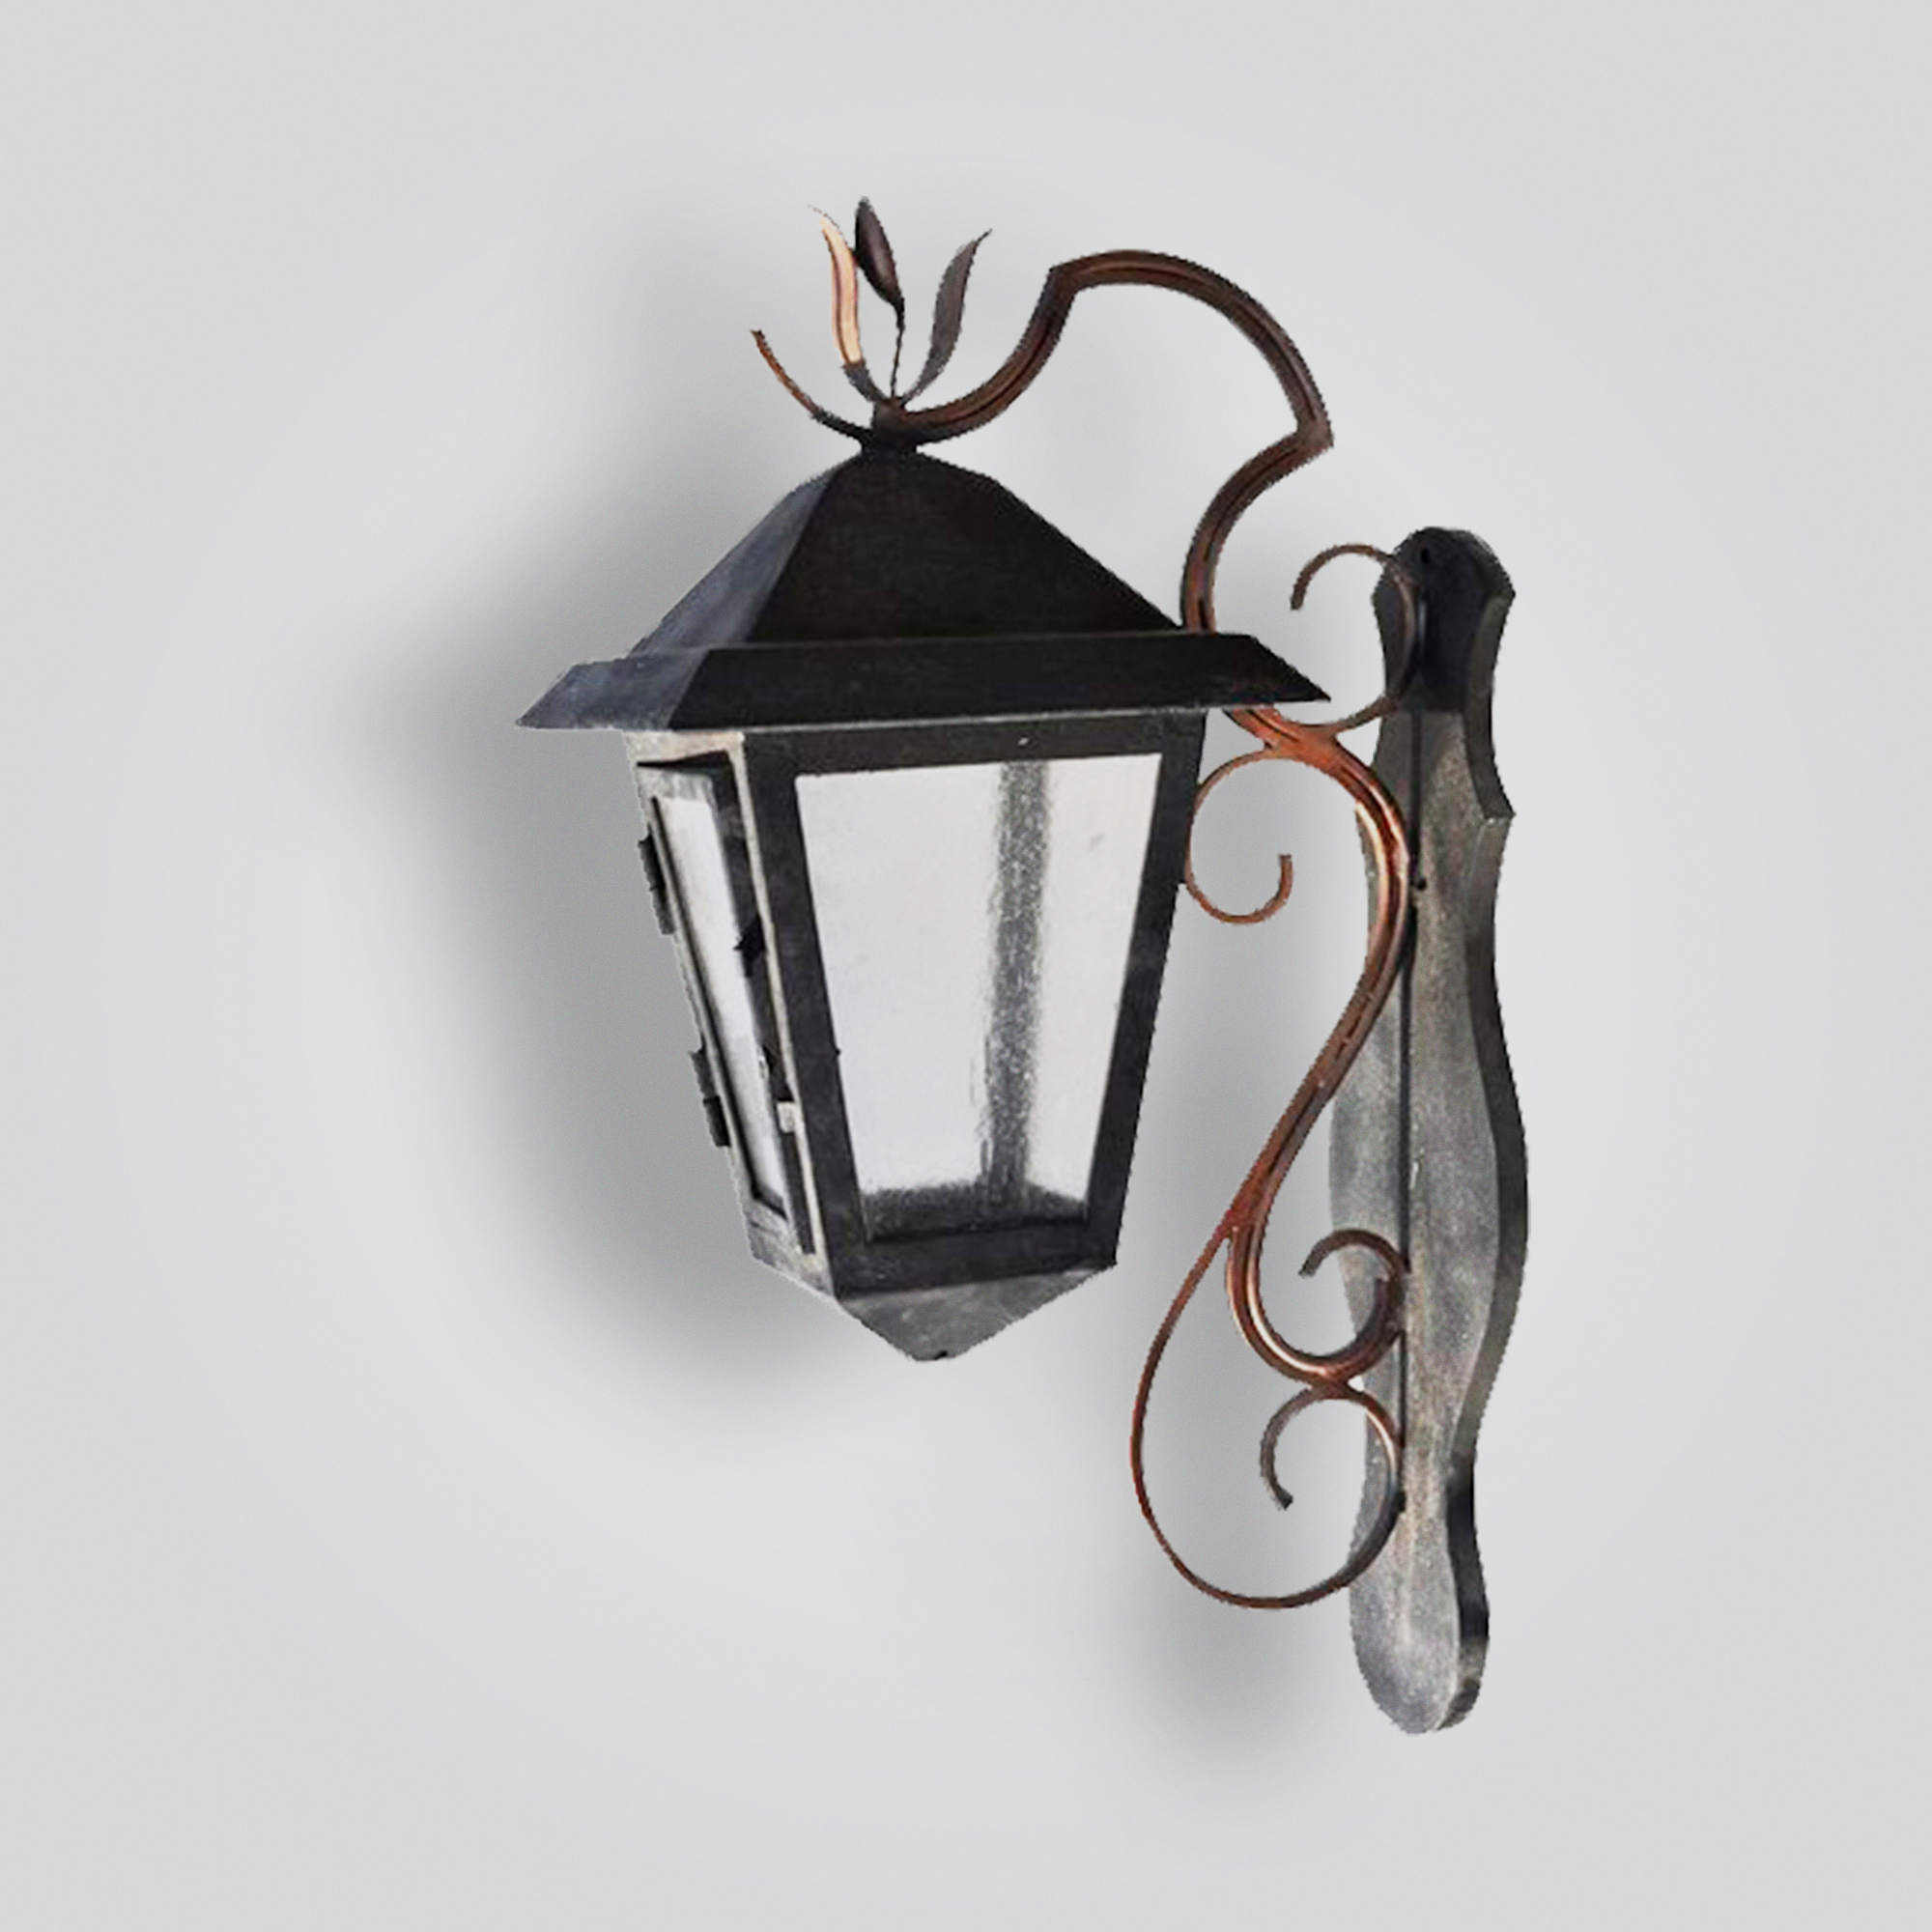 430-mb1-ir-w-ba Kentucky Lantern – ADG Lighting Collection